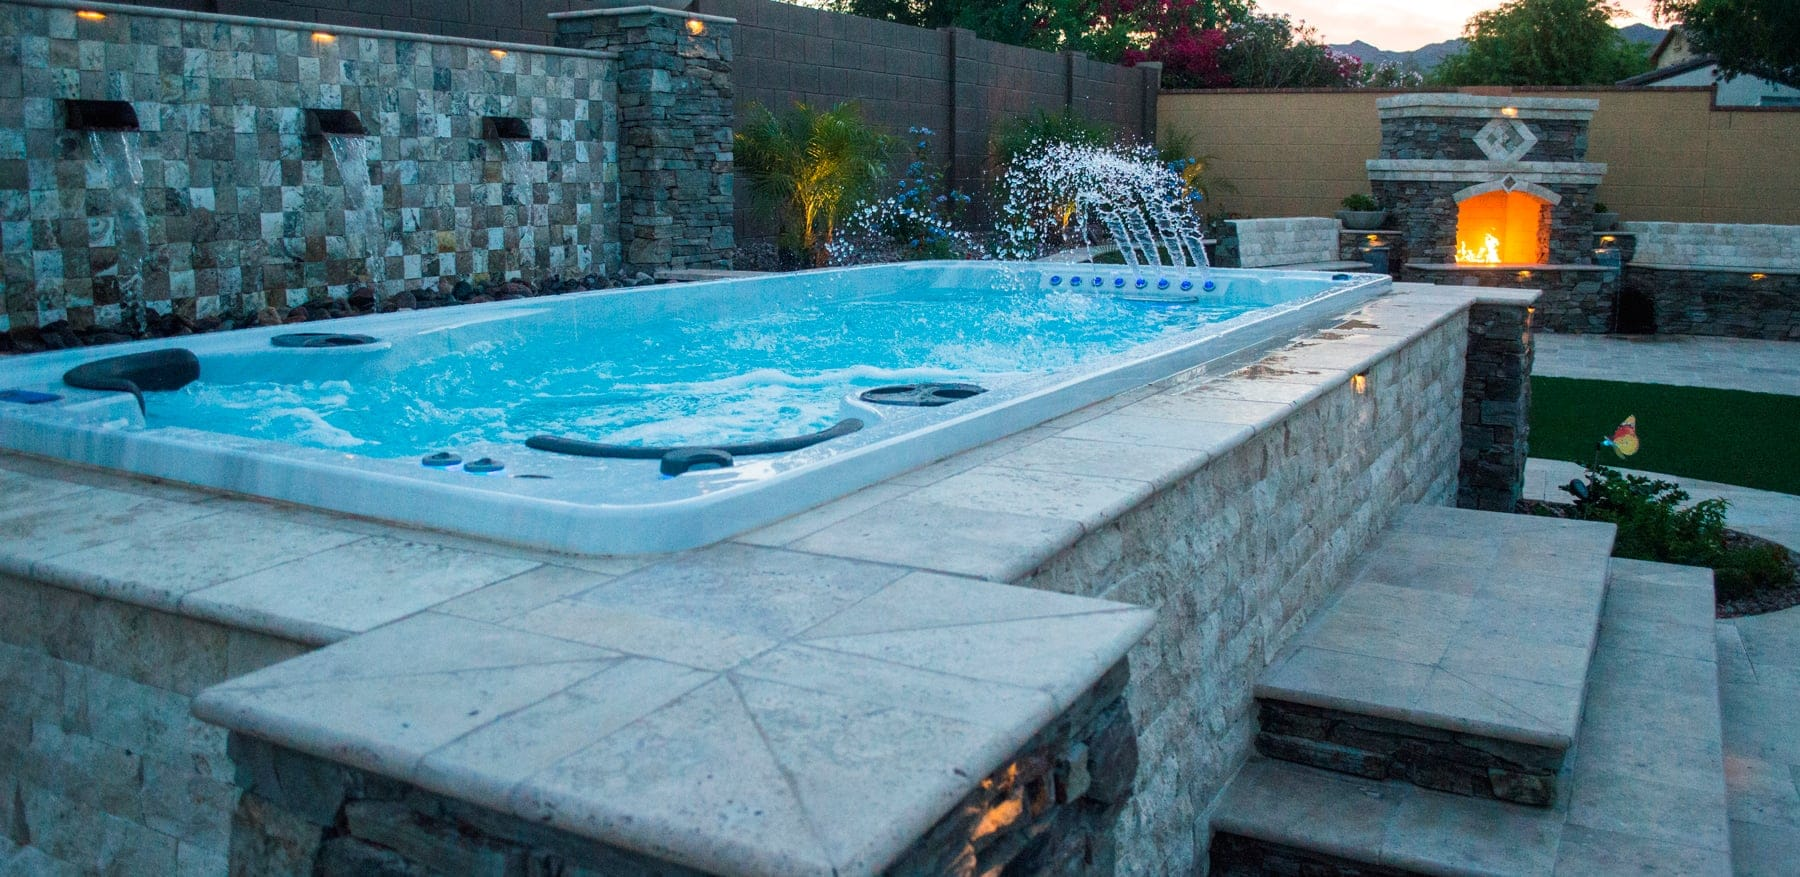 Swim spa installation ideas brady 39 s pool spa - Swimming pool swimming pool swimming pool ...